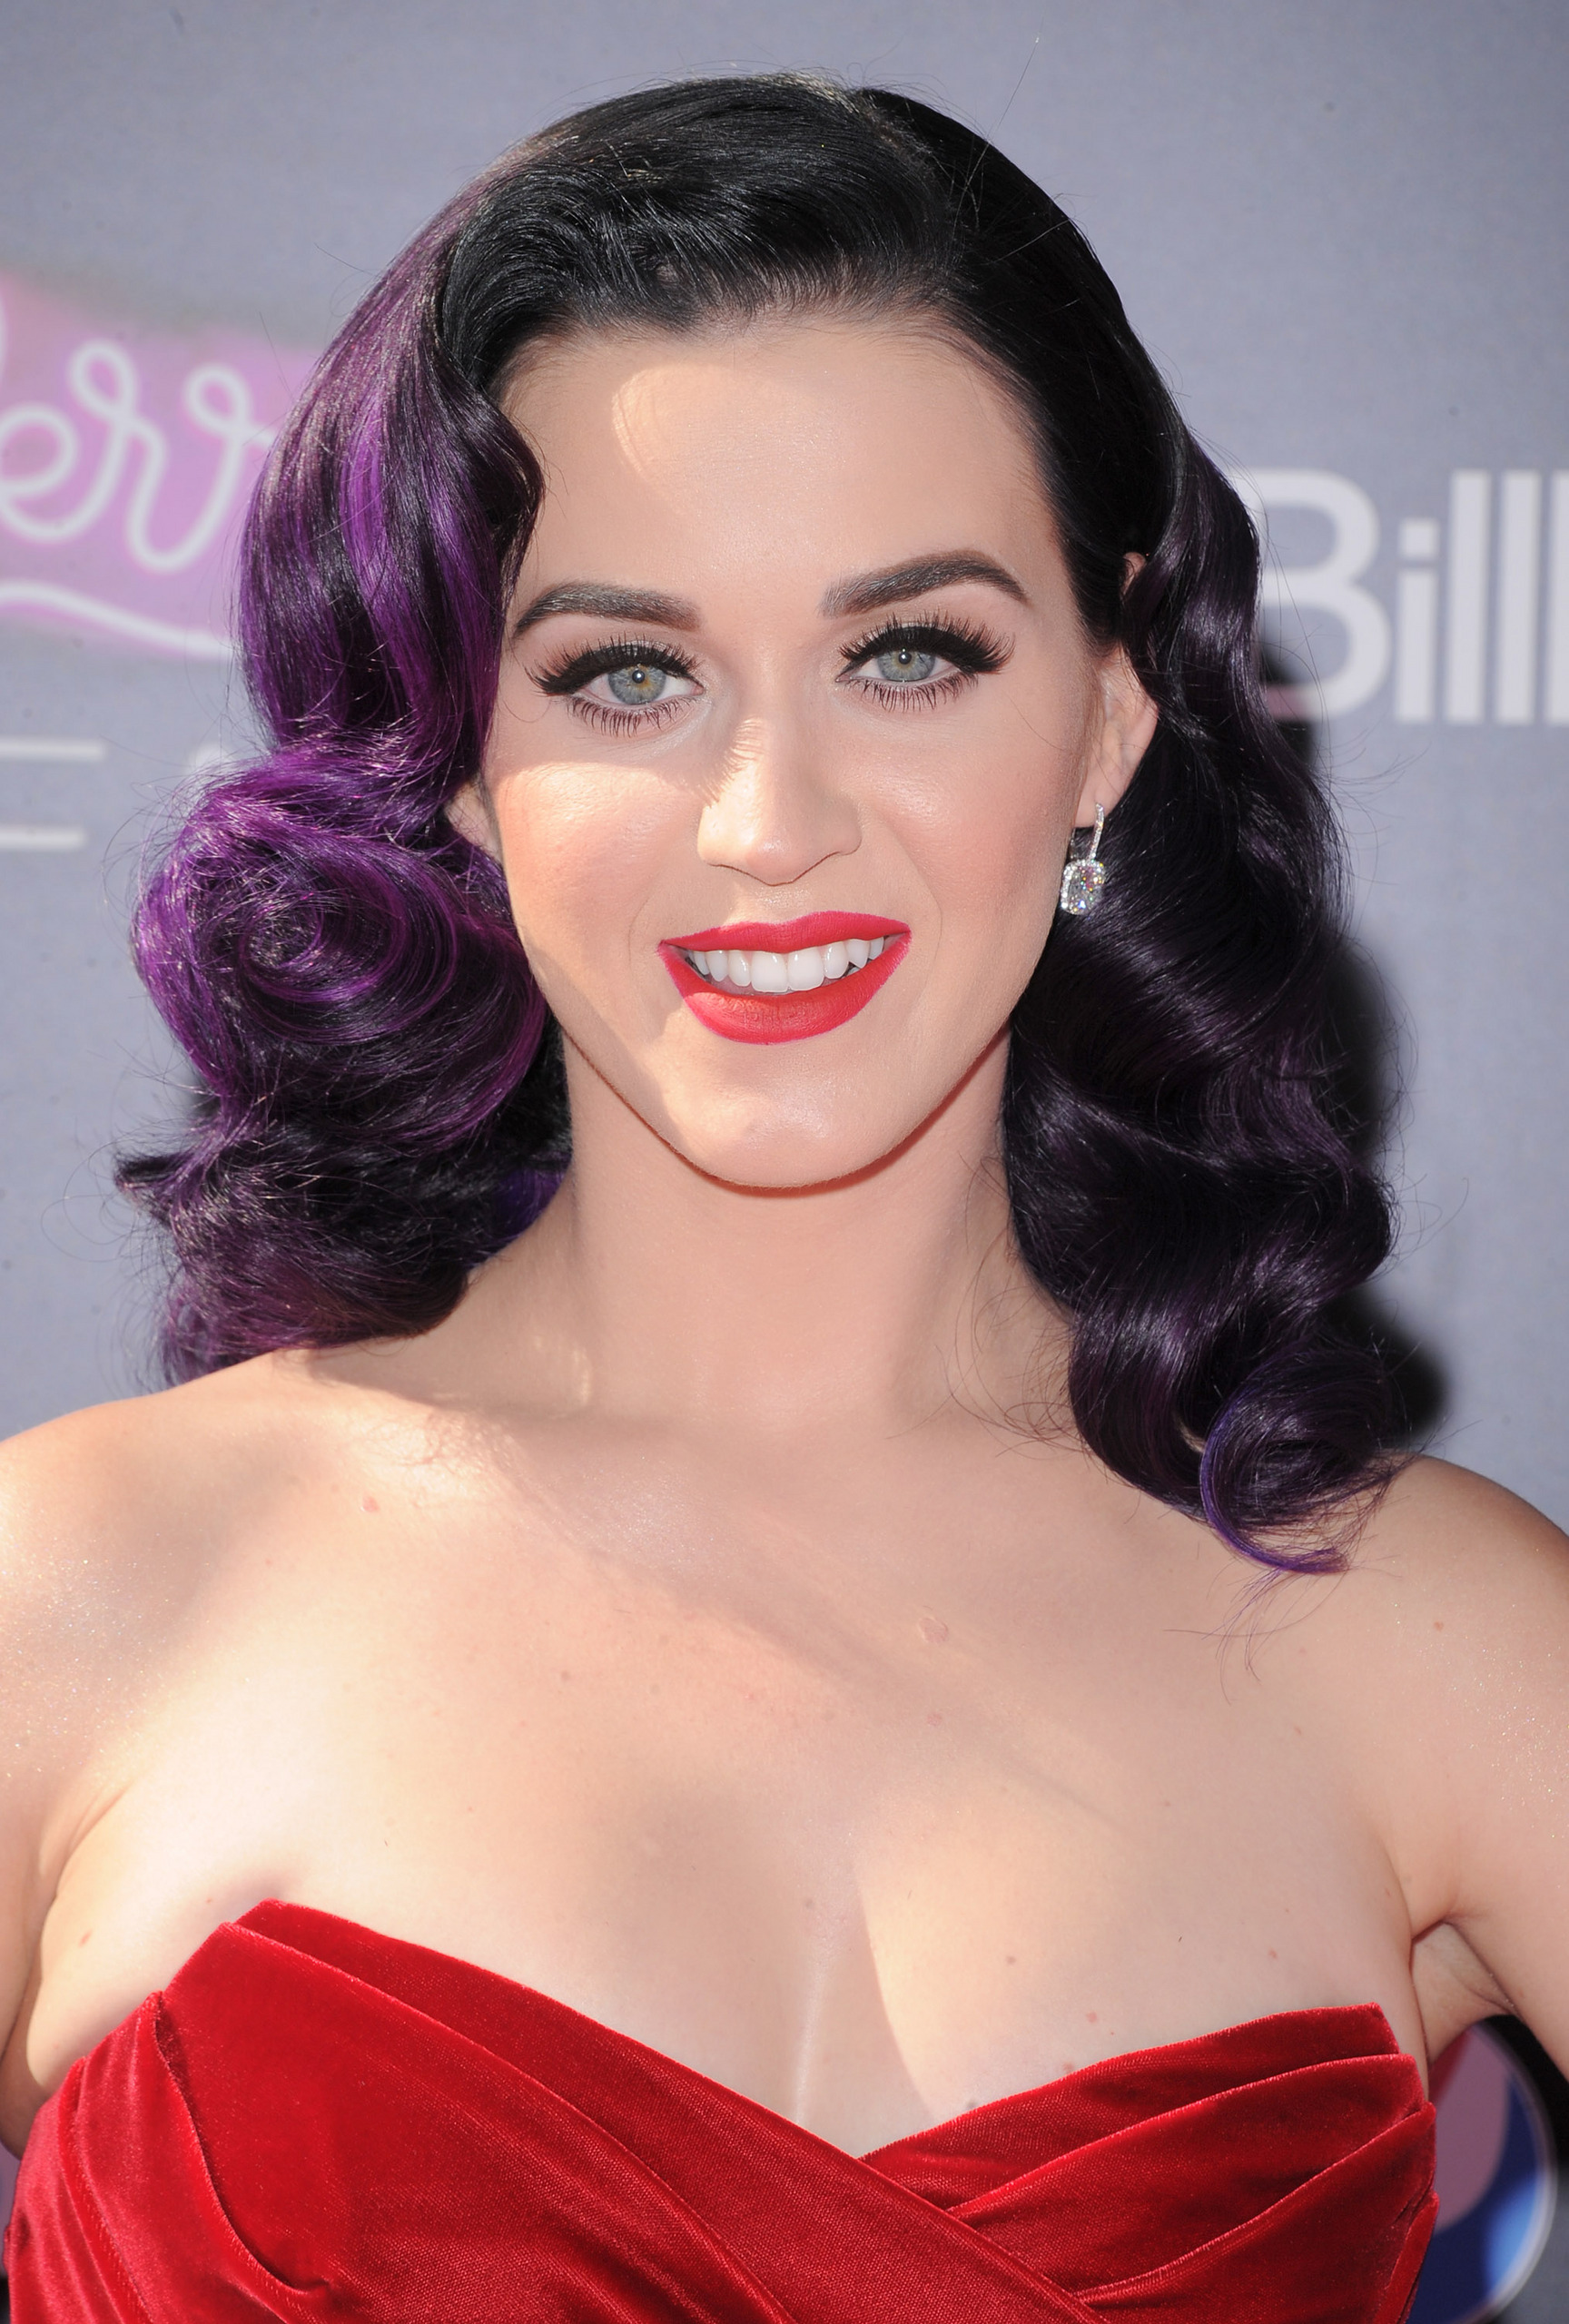 WWW_459RIRI_COM_katy perry part of me premiere in los angeles [26 june 2012]